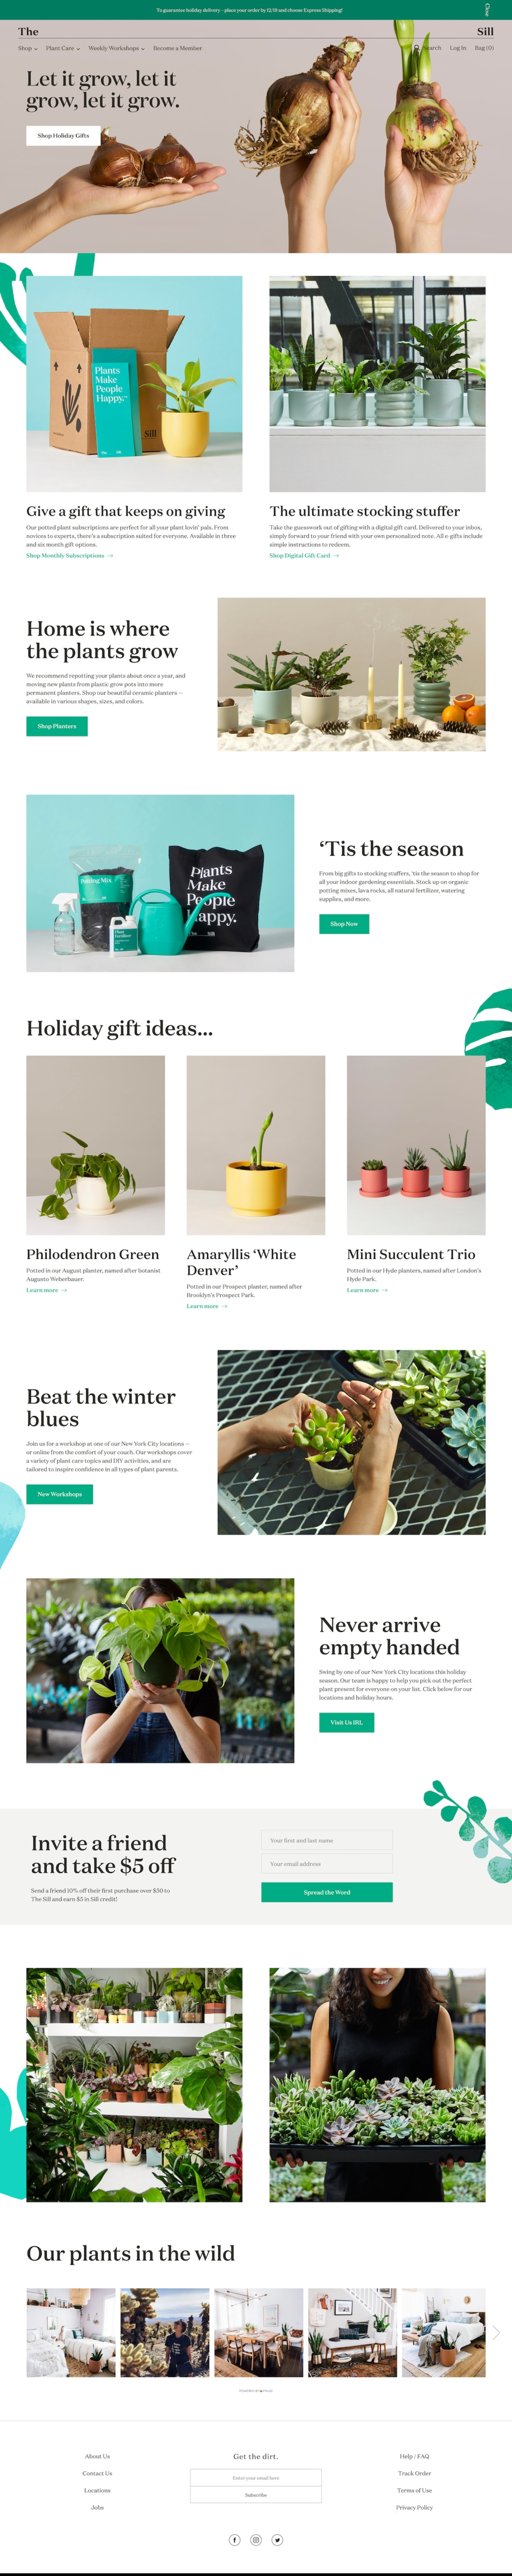 The Sill - Indoor Potted Plants Delivered to Your Door